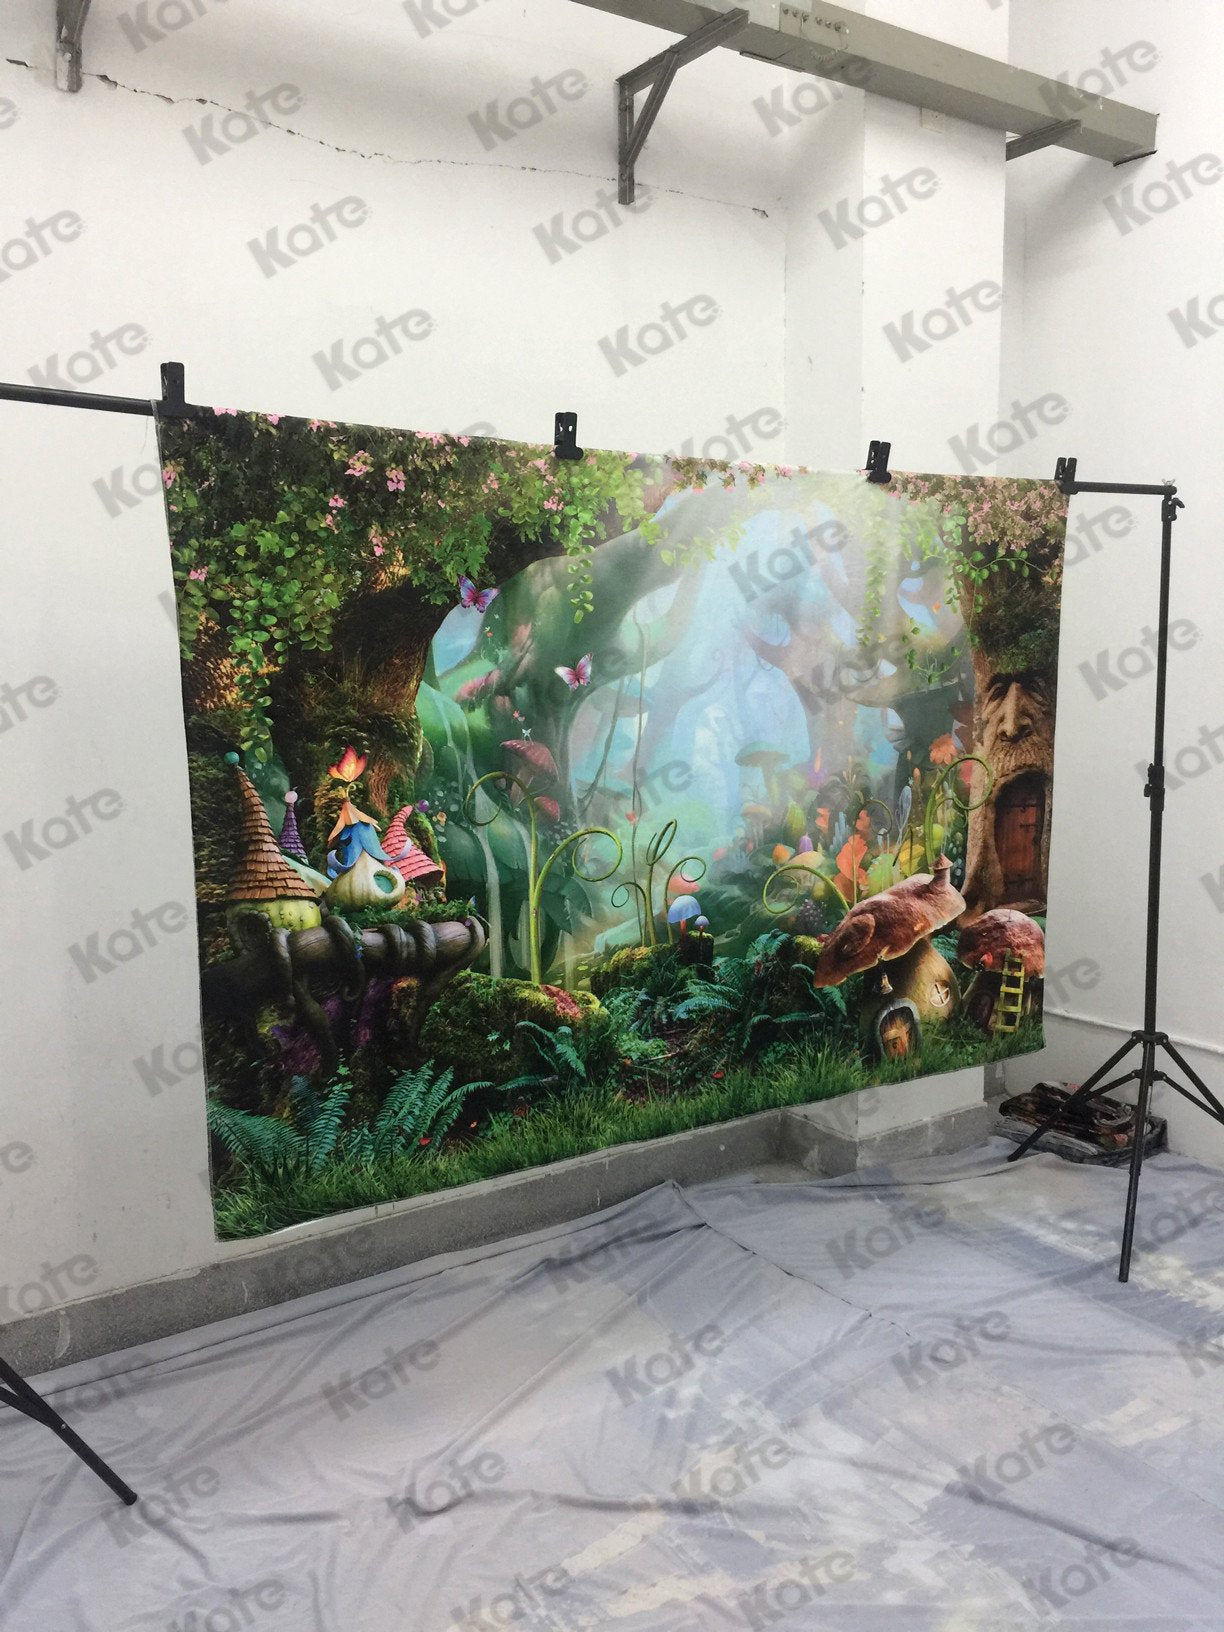 Load image into Gallery viewer, Katebackdrop:Kate Children Fairy Tale Colorful Forest Mushrooms Backdrops